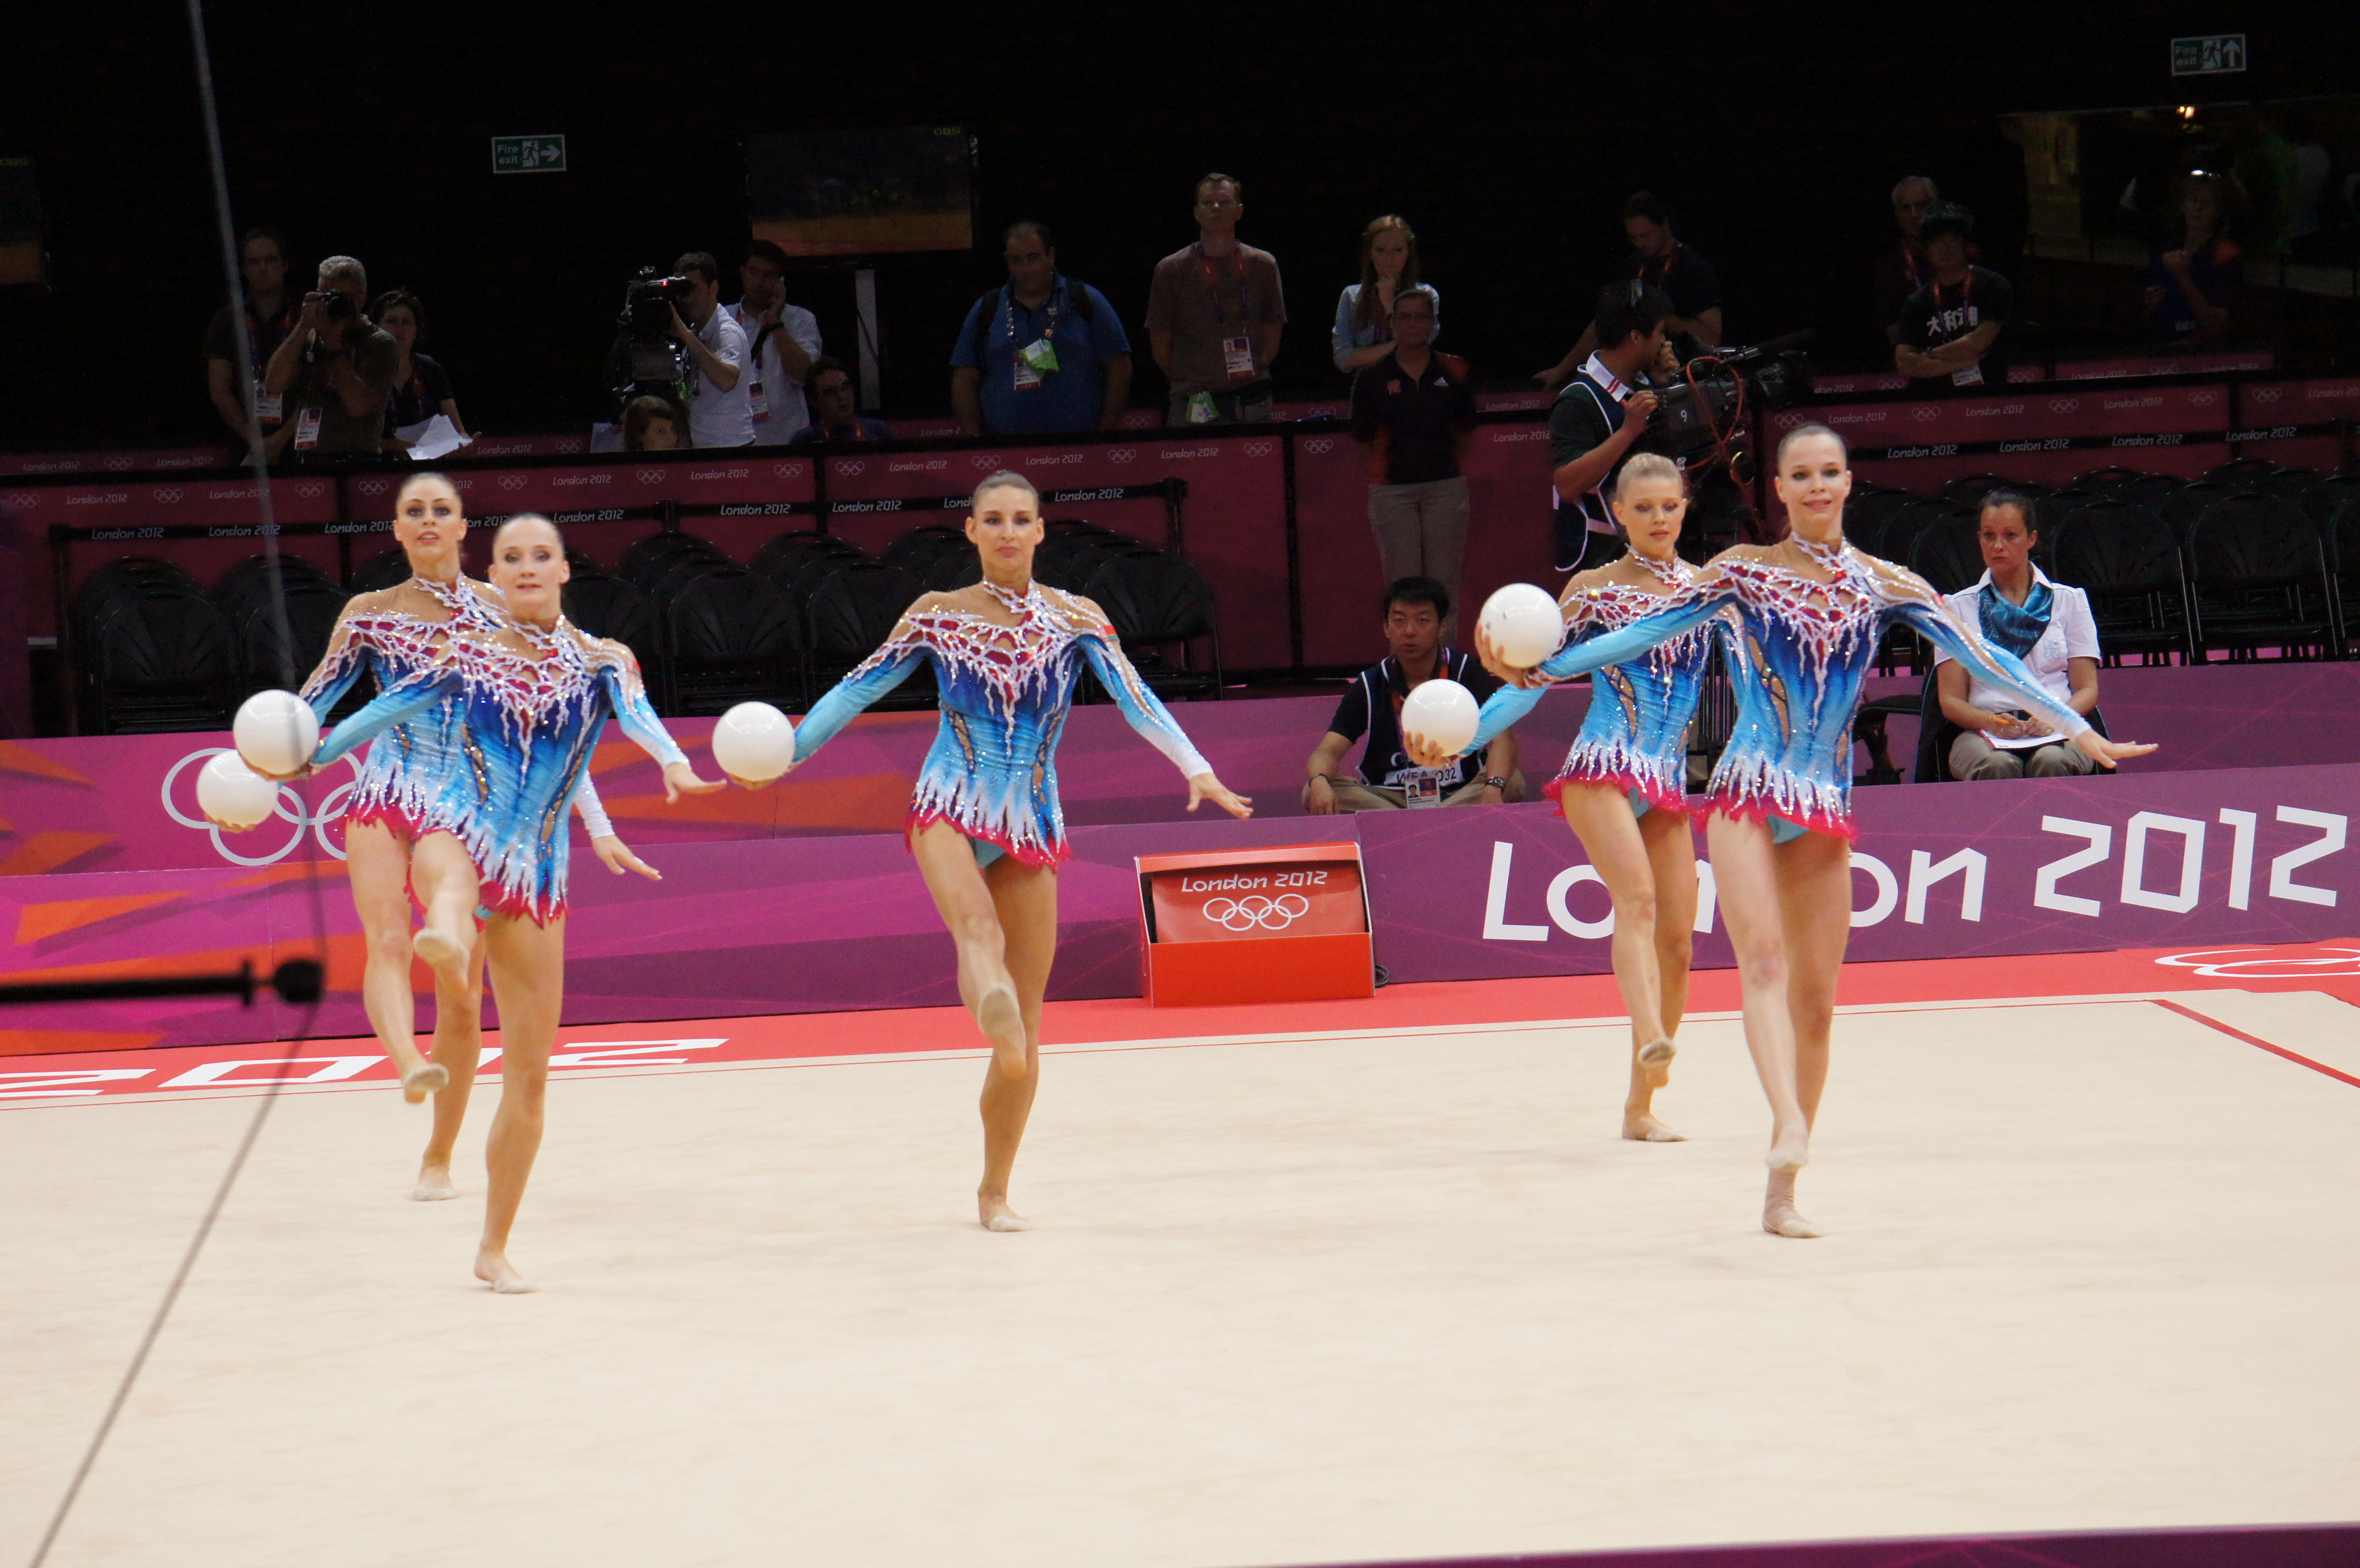 File:London 2012 Rhythmic Gymnastics - Team Belarus.jpg ...